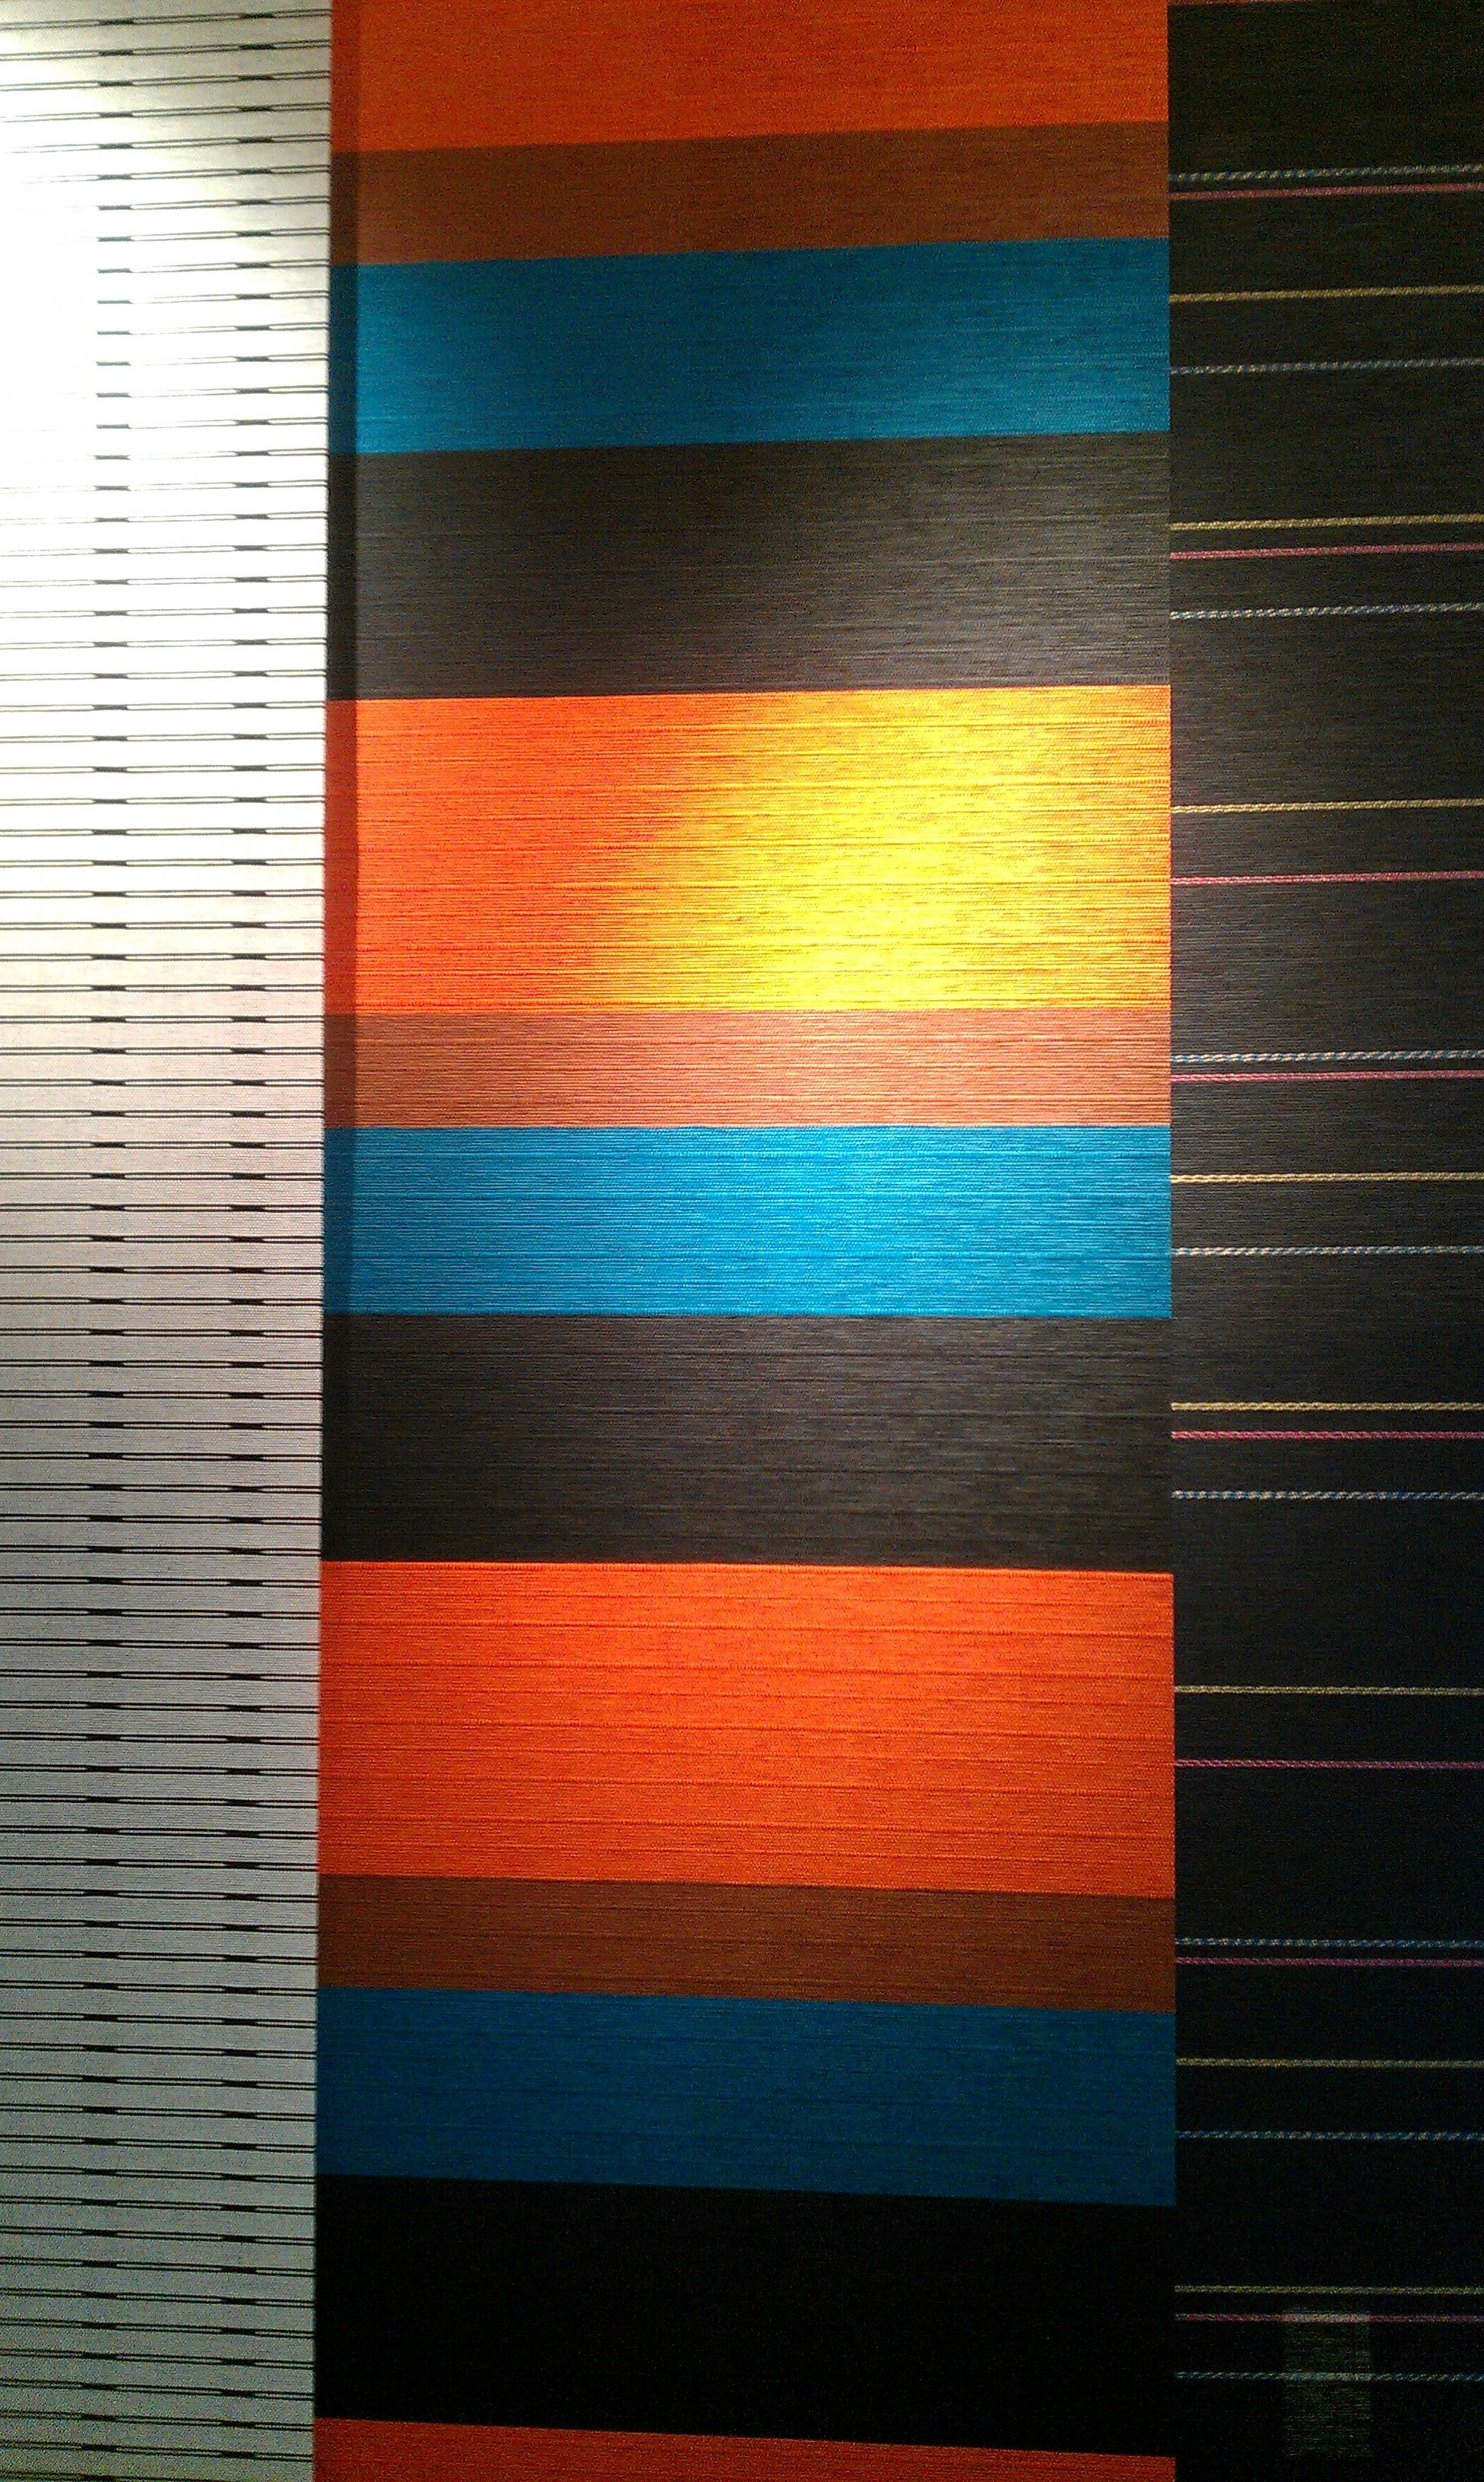 Color scheme for living room: turquoise, burnt orange, navy blue, brown